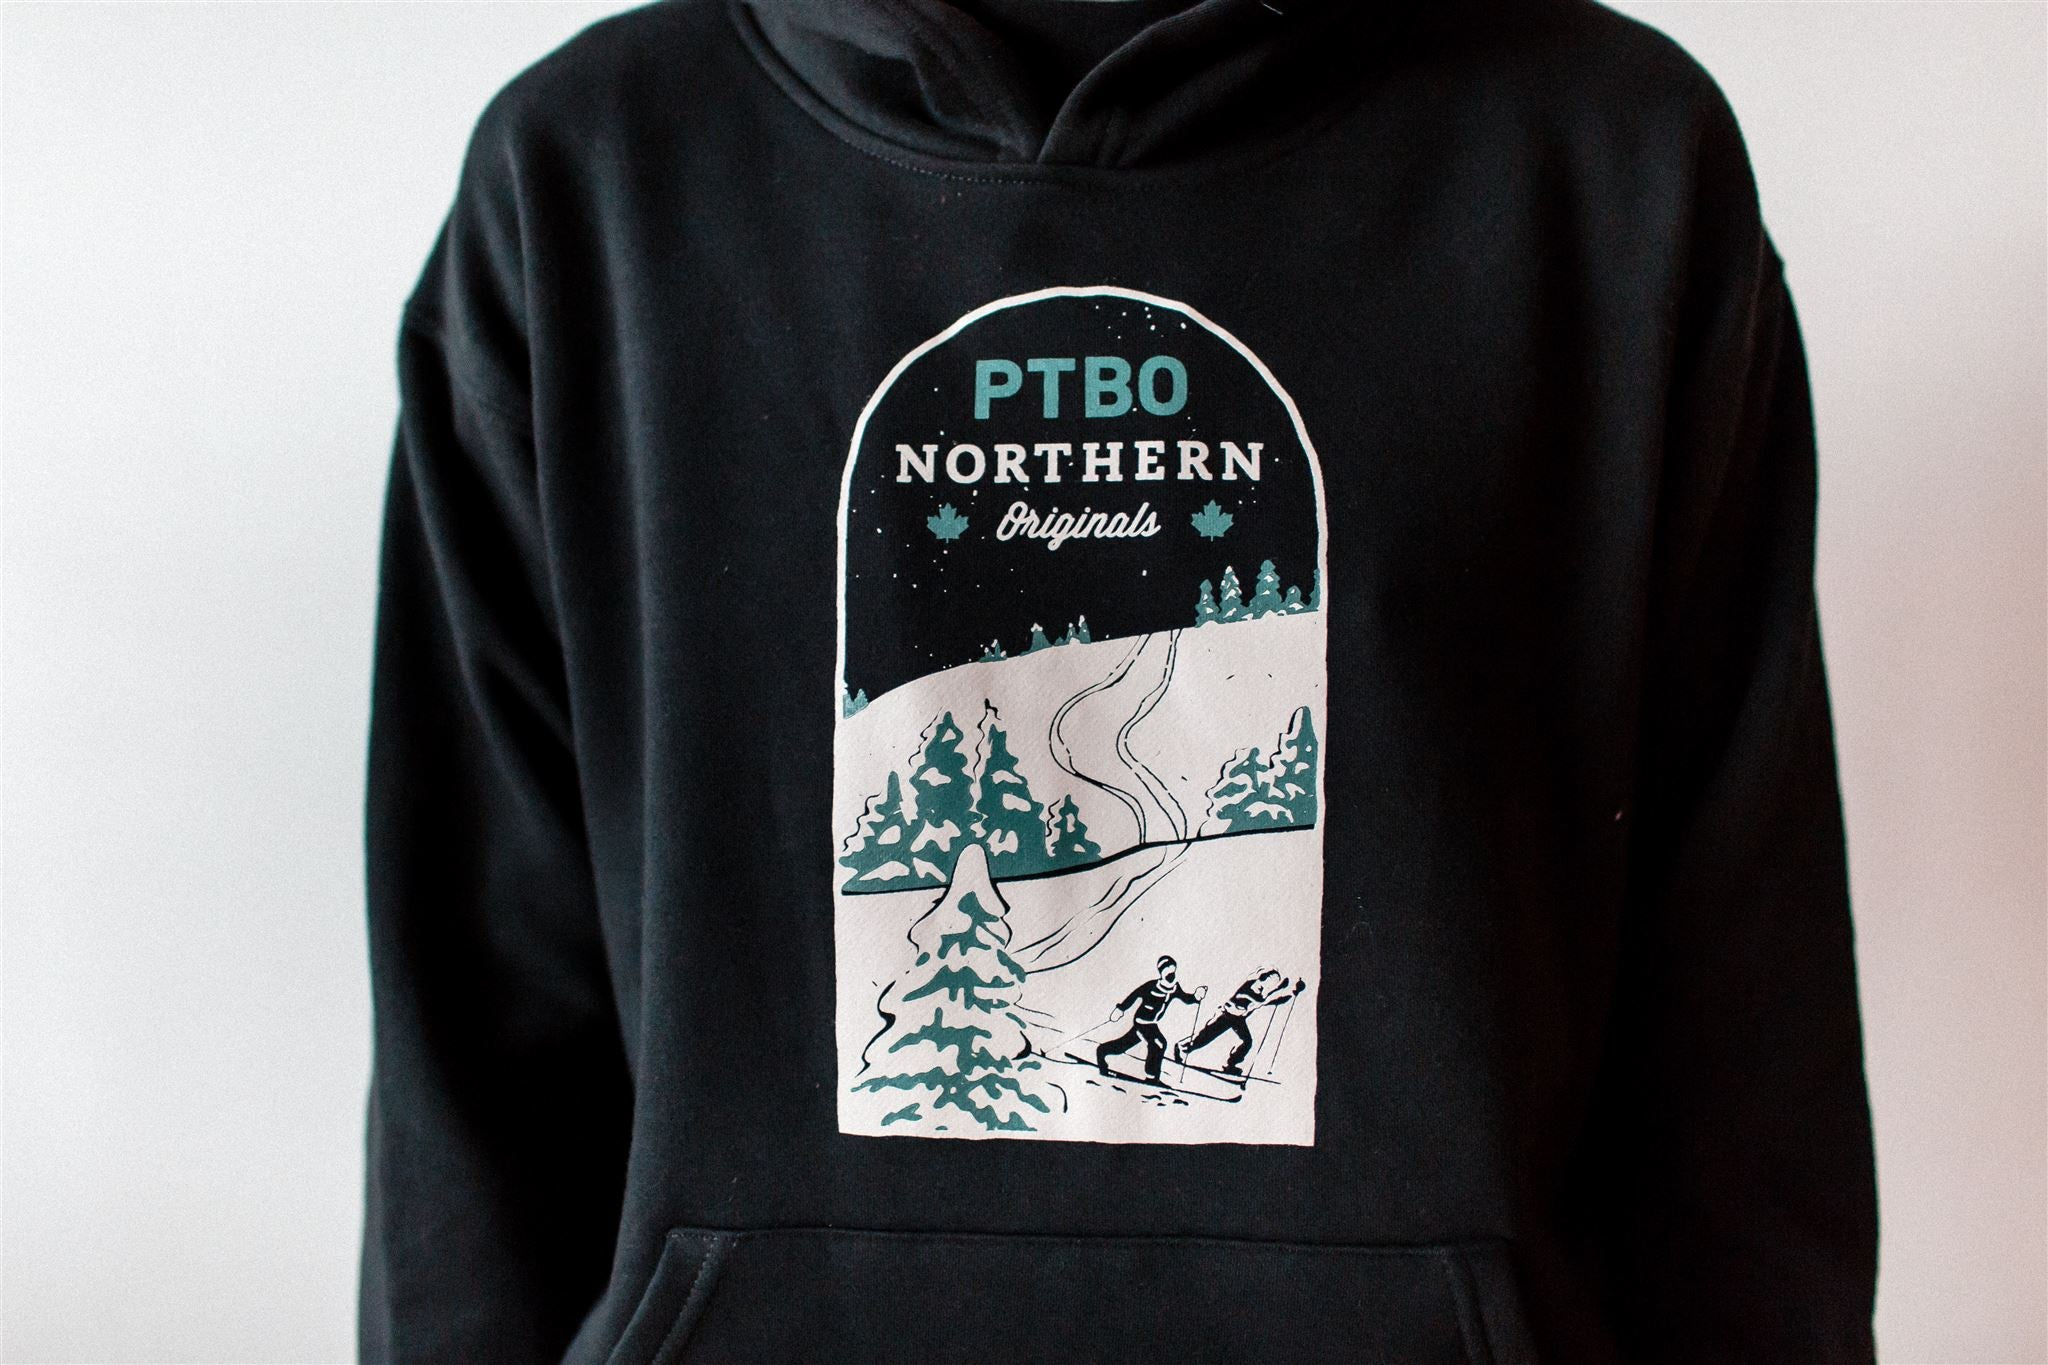 PTBO Northern Originals Skiing Hoodie